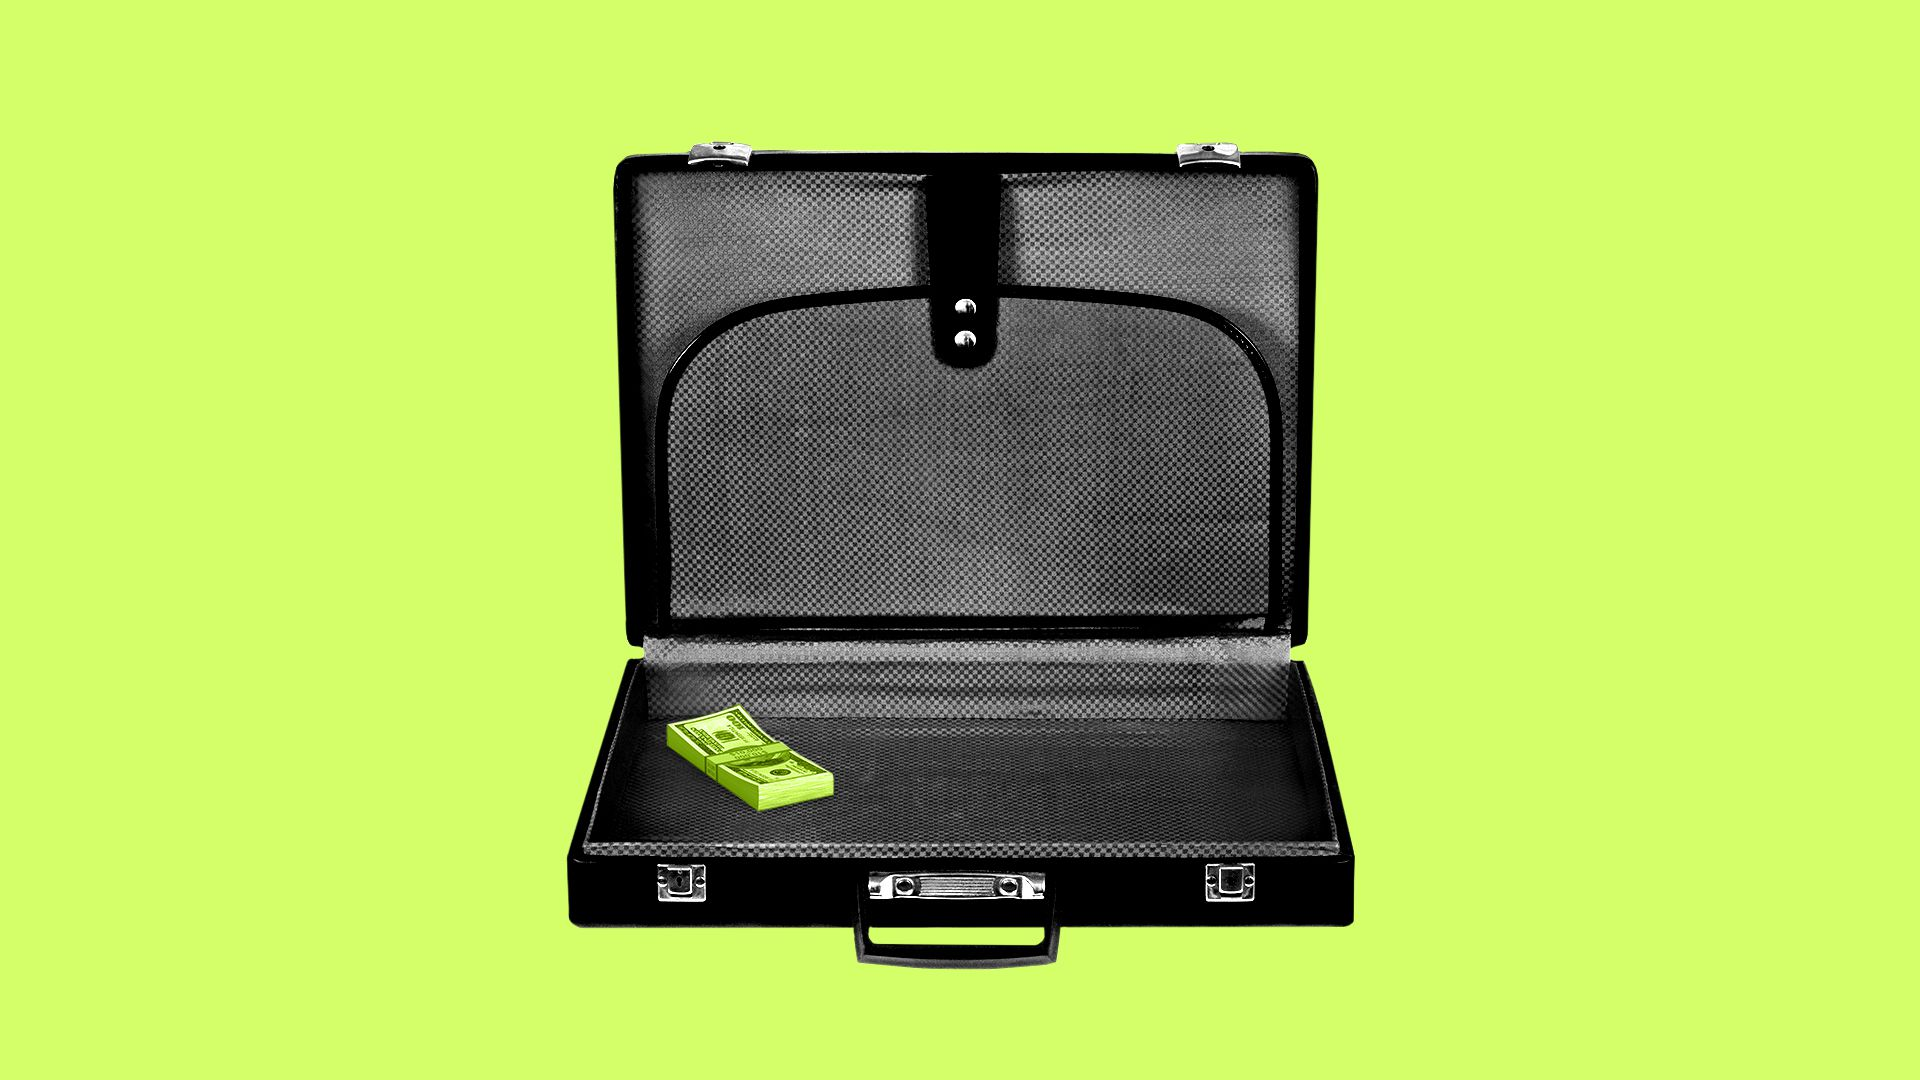 Illustration of a briefcase with a small stack of money